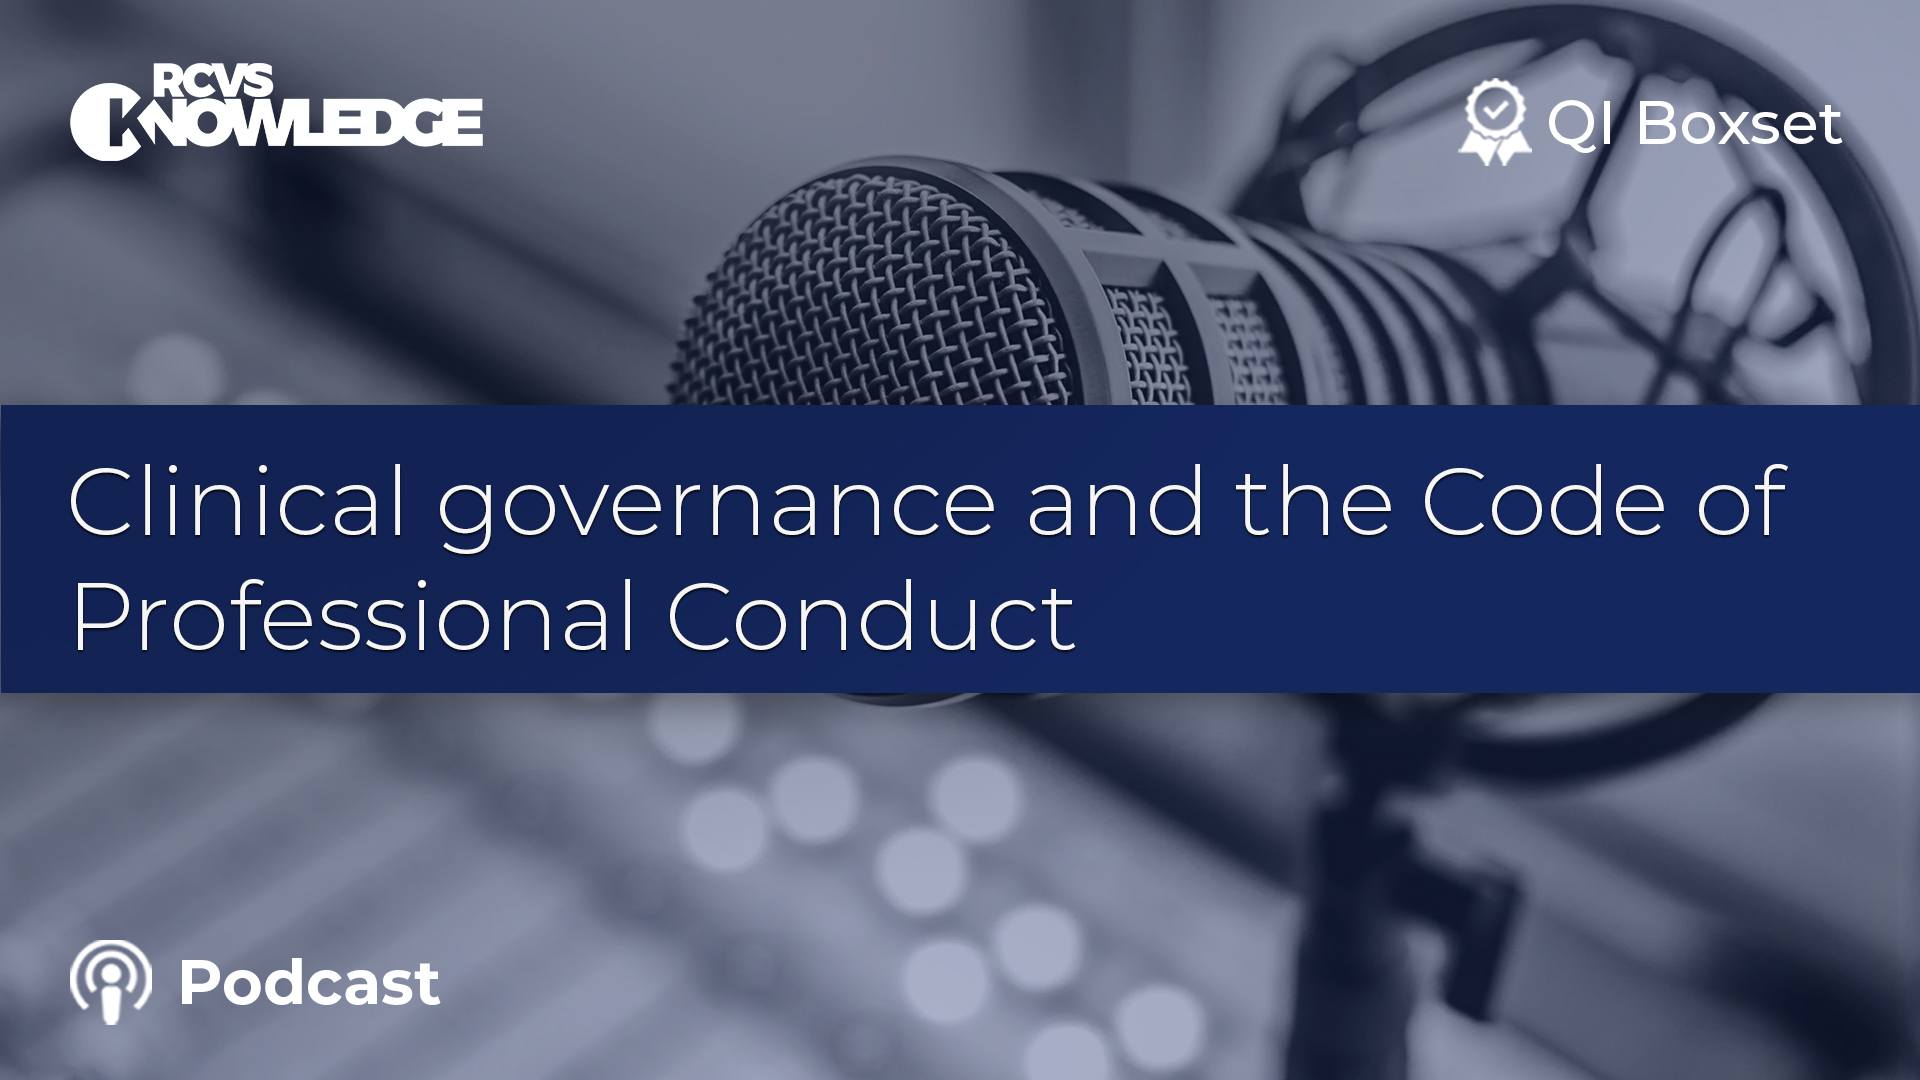 Clinical governance and the Code of Professional Conduct